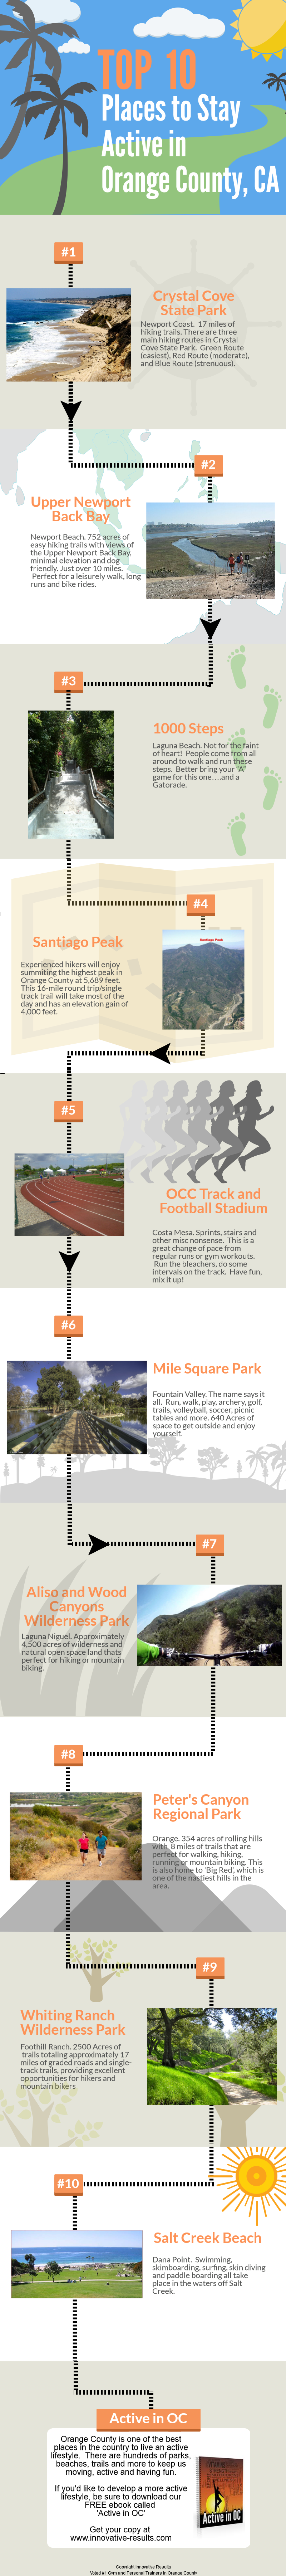 Orange County Top 10 Places To Stay Active, Activity Infographic, Orange County Fun, Orange County Activities